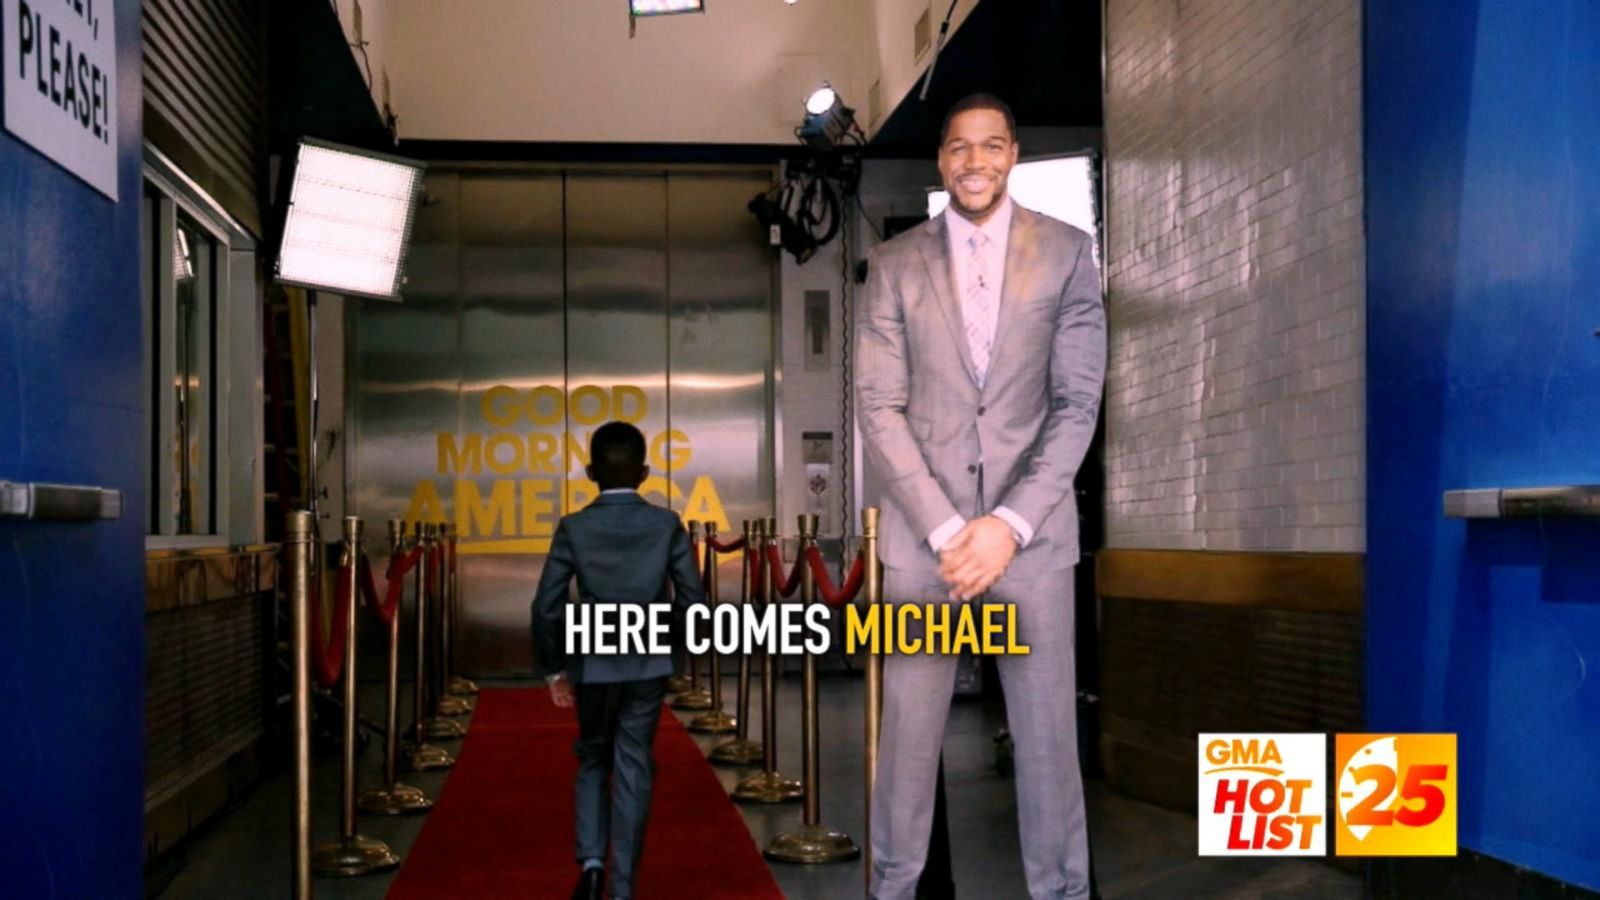 VIDEO: 'GMA' Hot List: Michael Strahan Coming Full-Time to 'GMA'